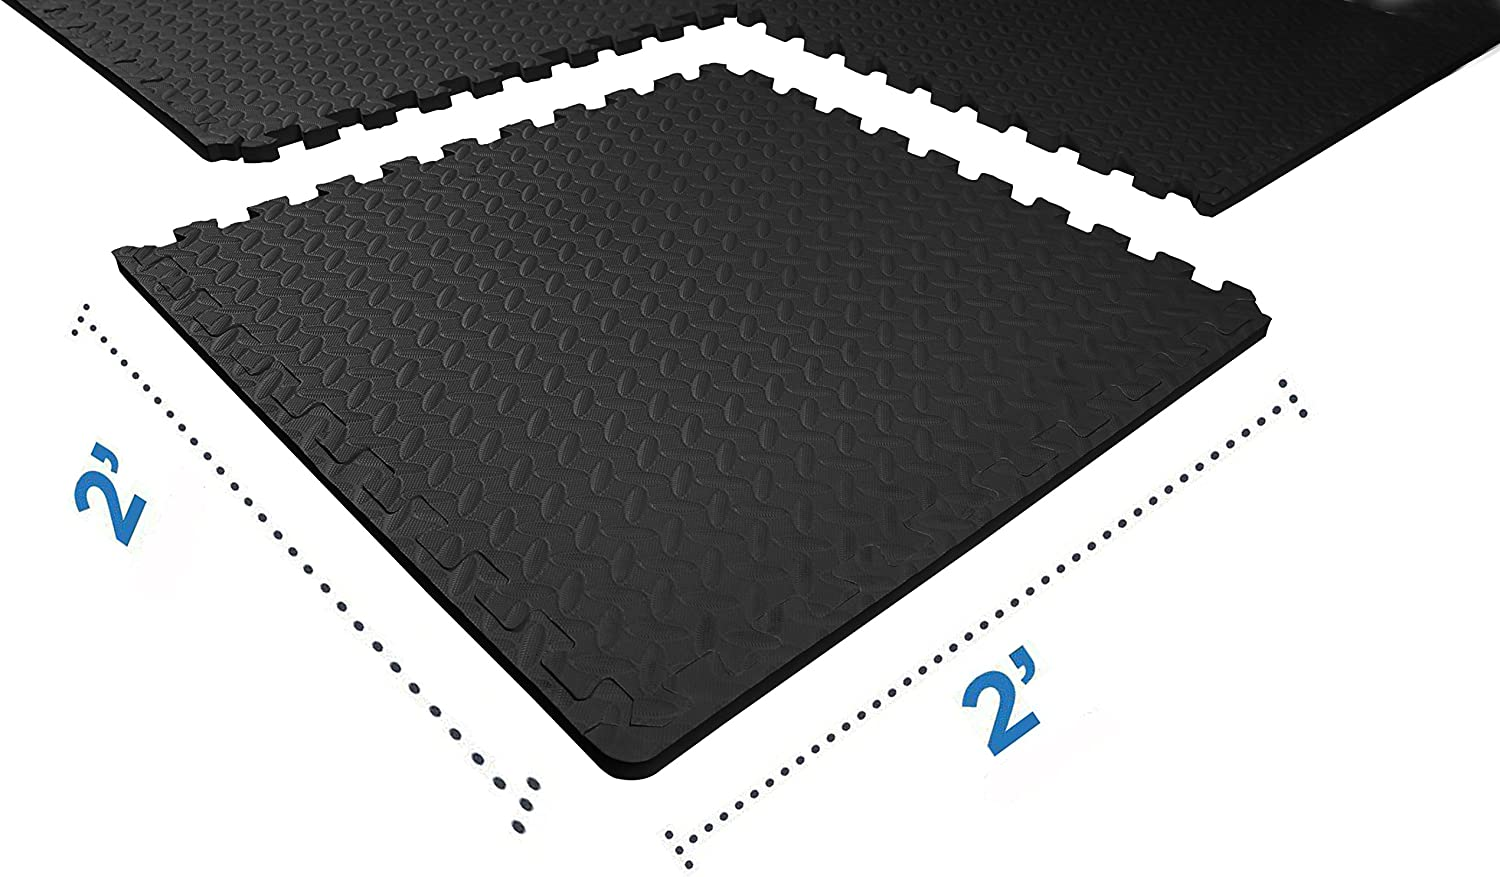 BalanceFrom Puzzle Exercise Mat with EVA Foam Interlocking Tiles for Exercise